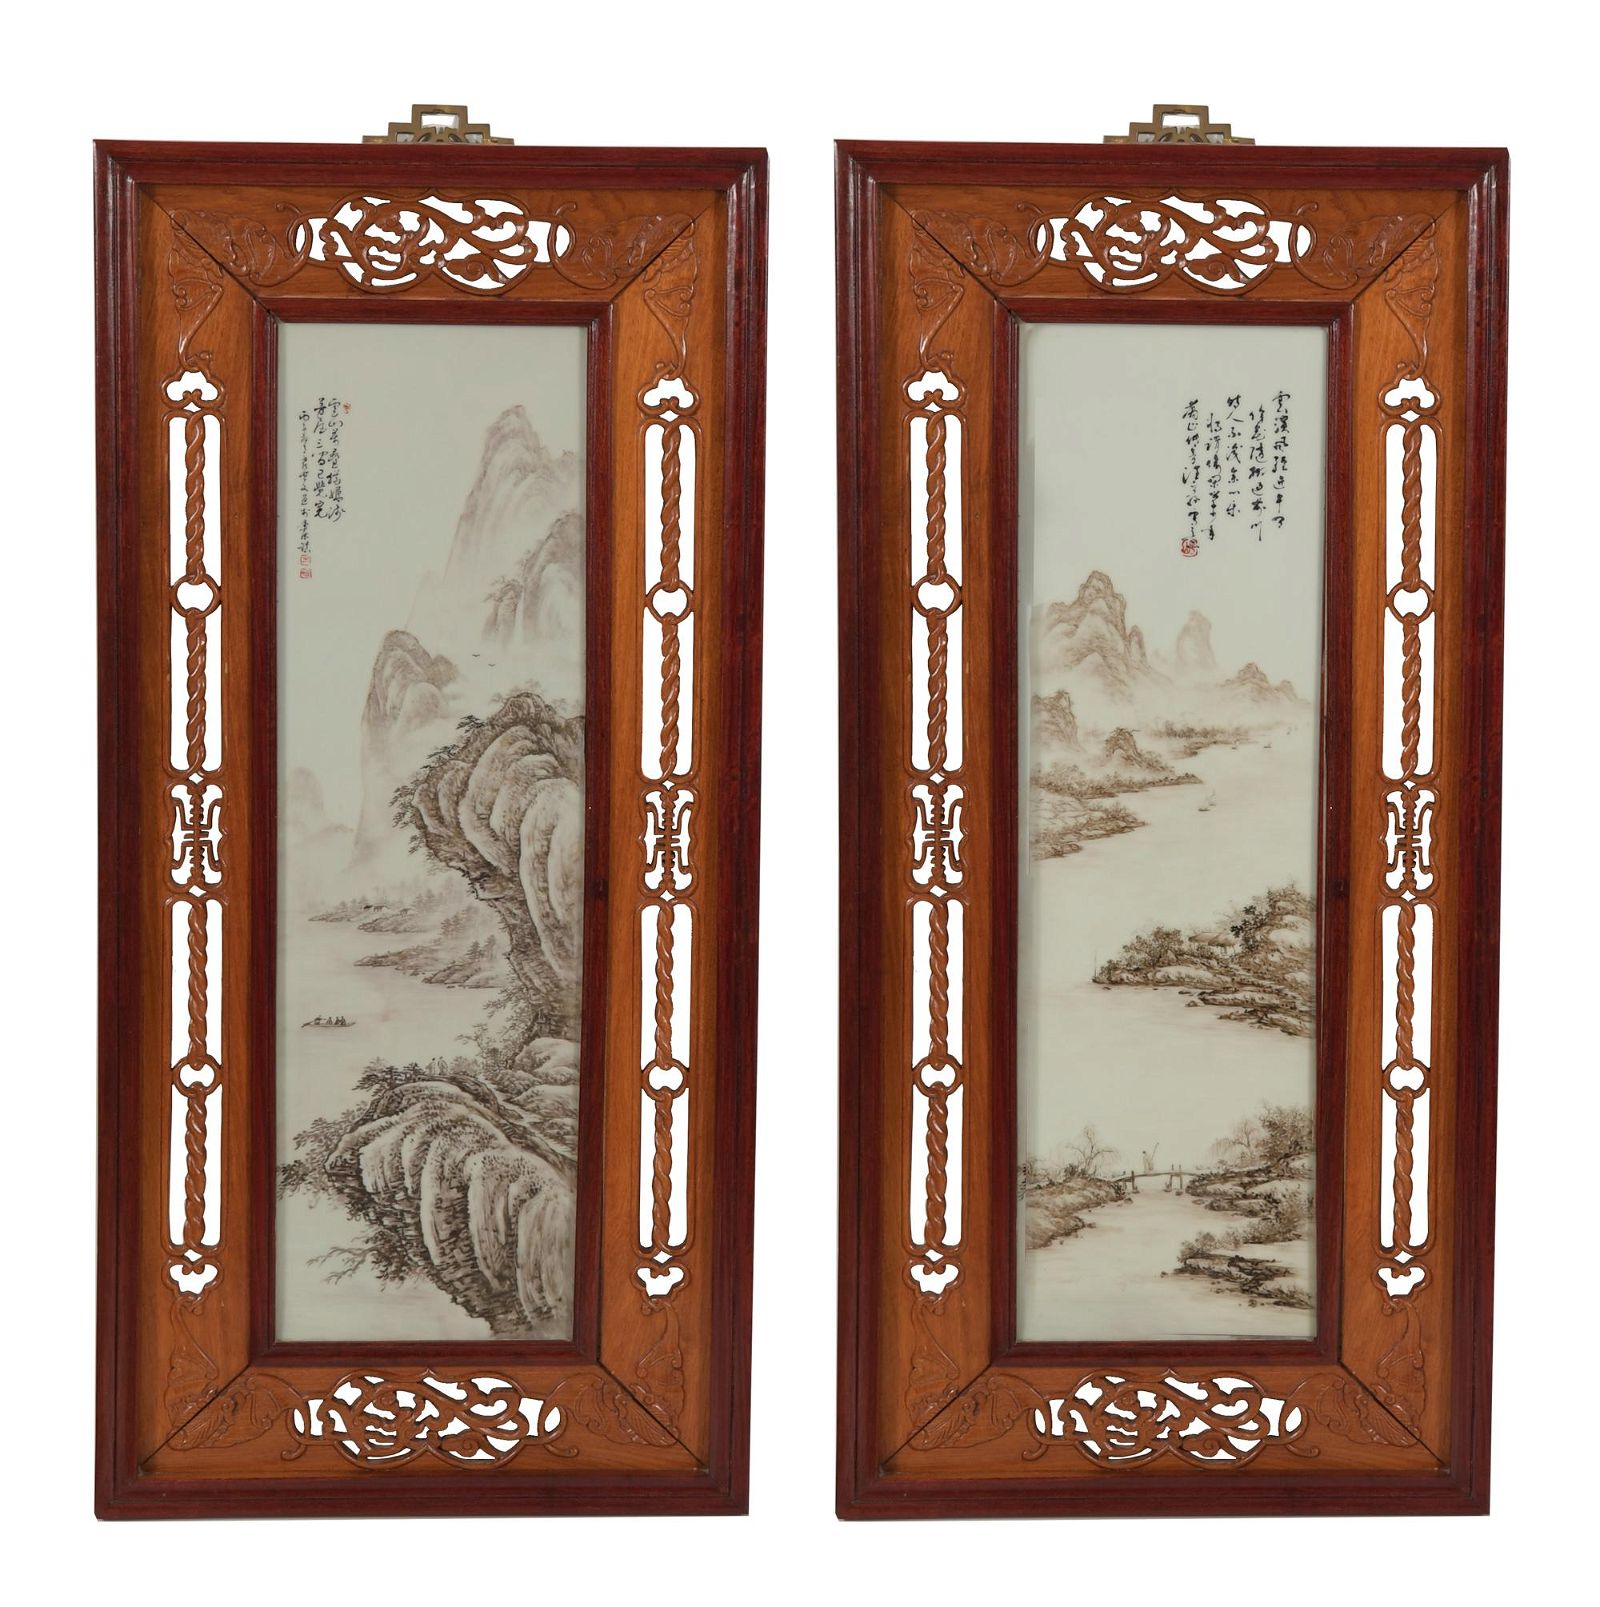 Pair of Landscape Plaques by Wang Pingsun